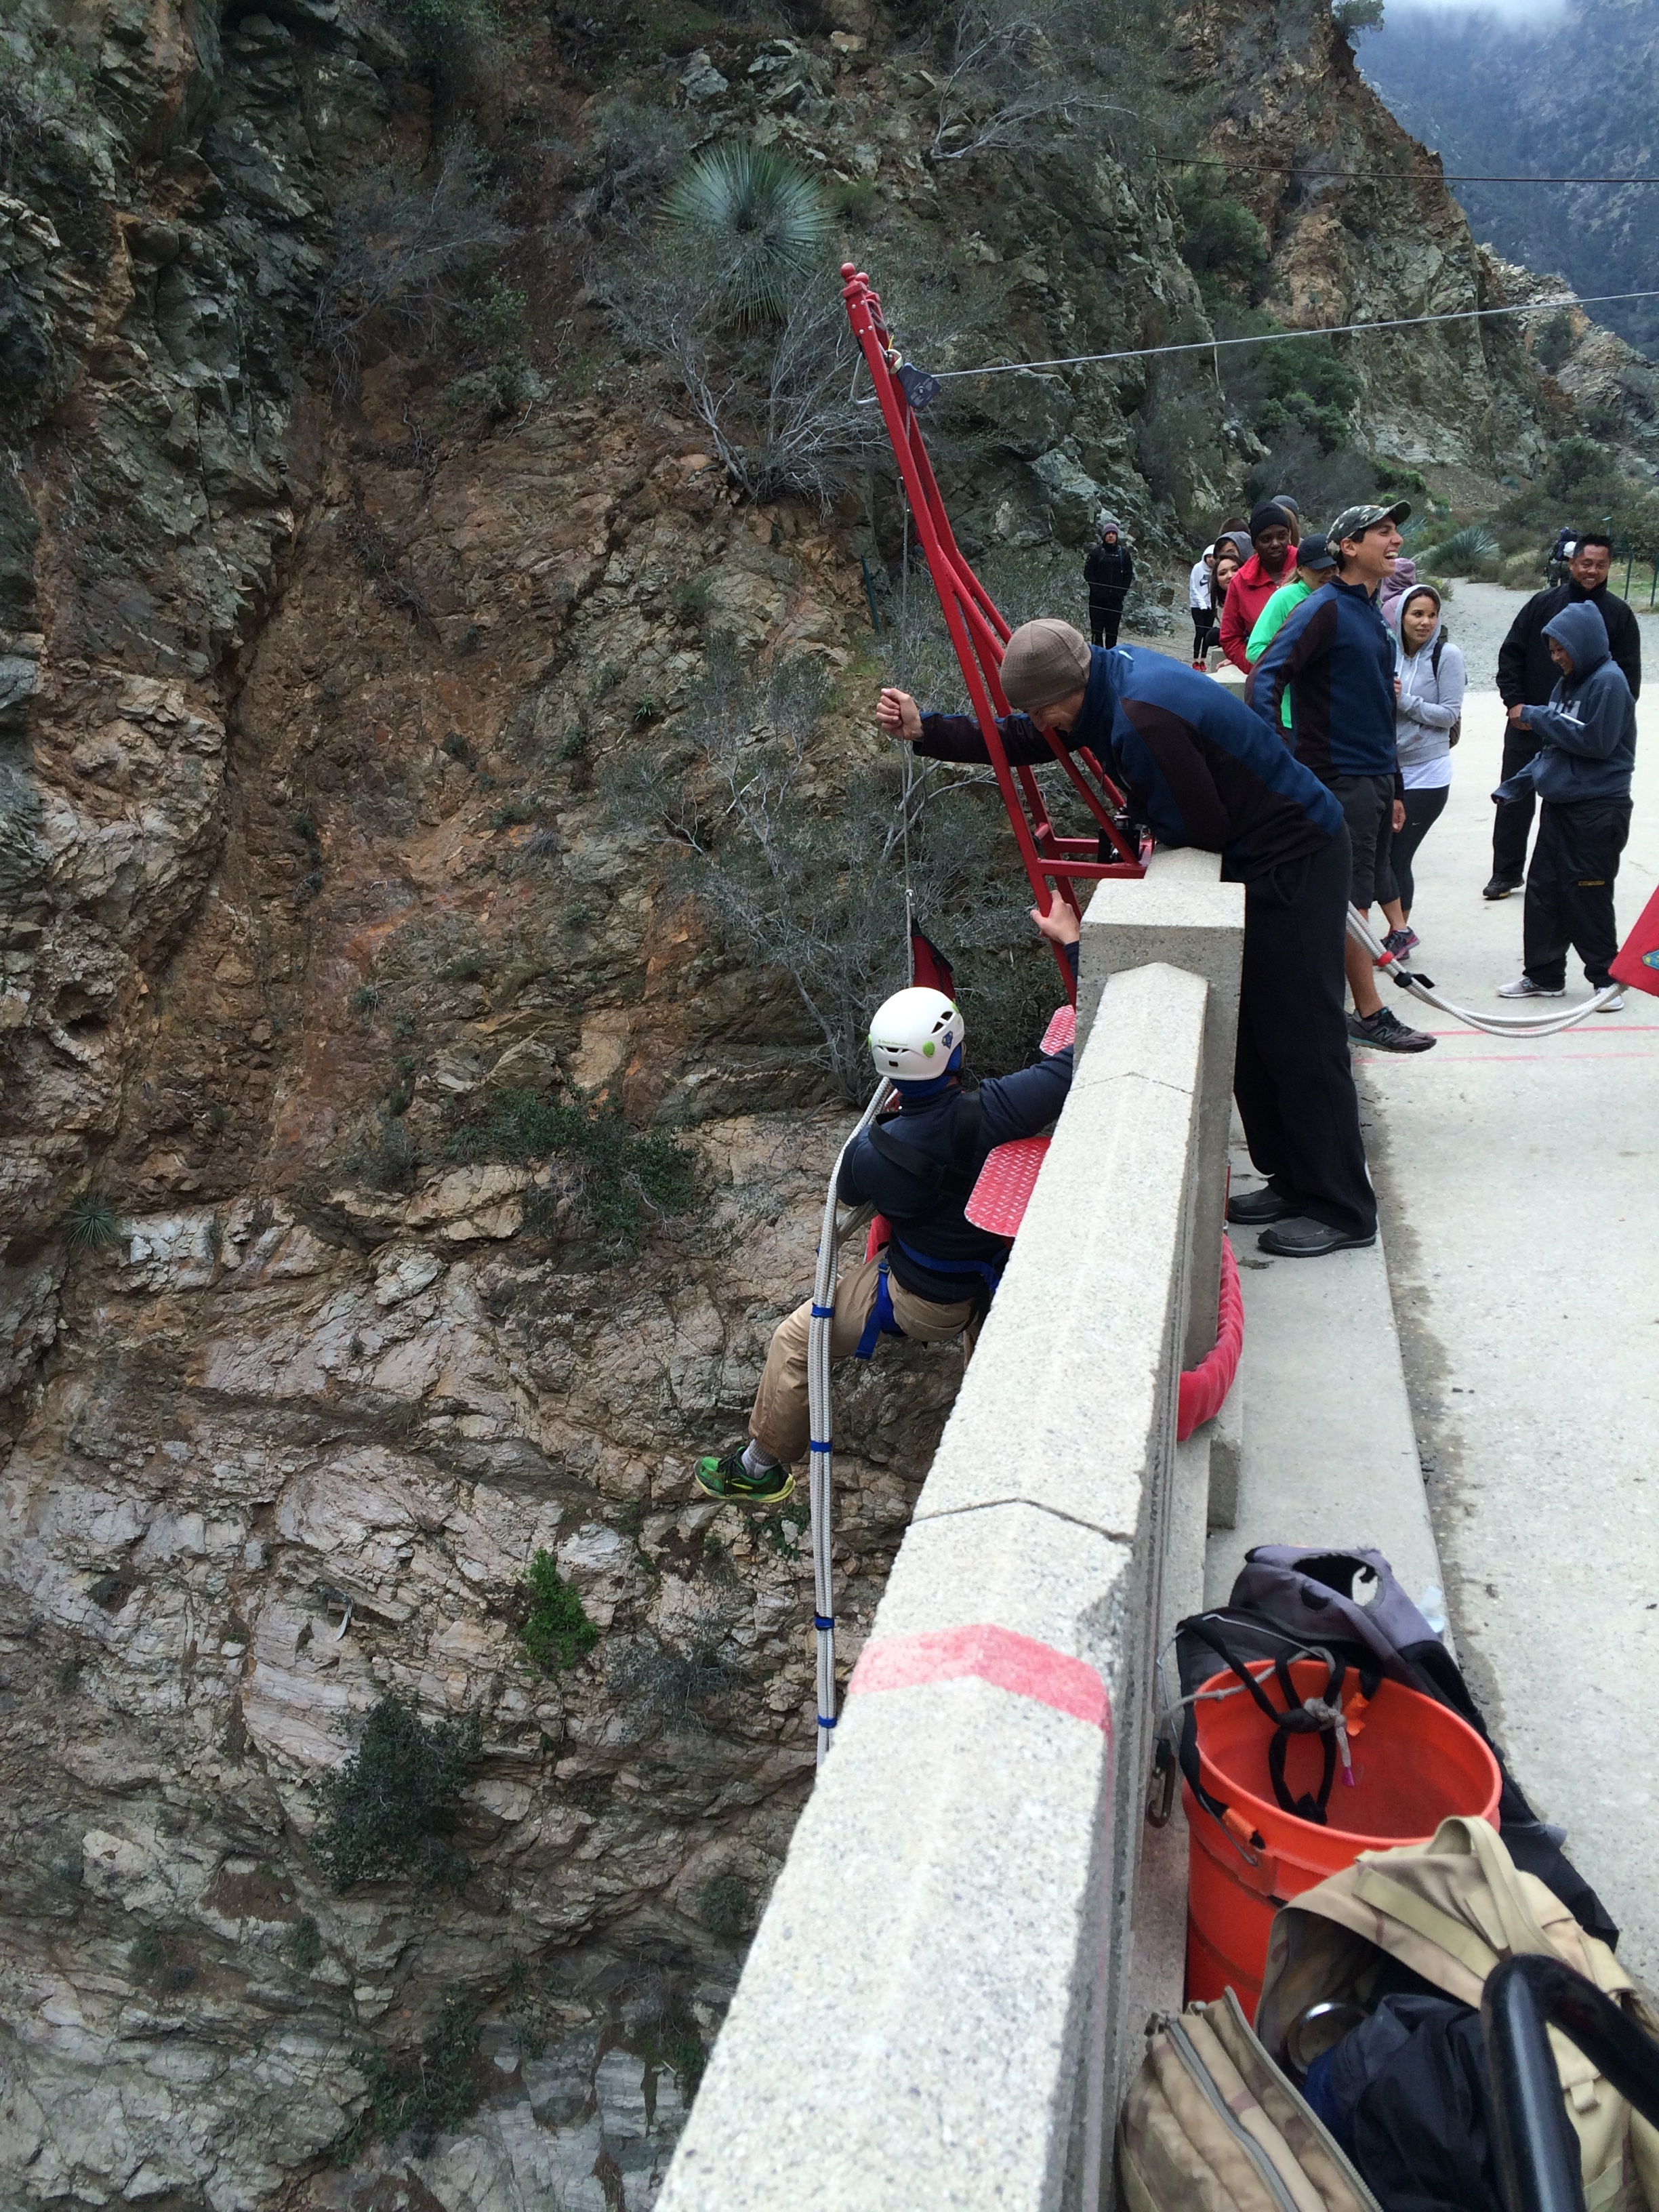 Once the jump is over, Bungee America staff assist jumpers back onto the platform and the bridge.